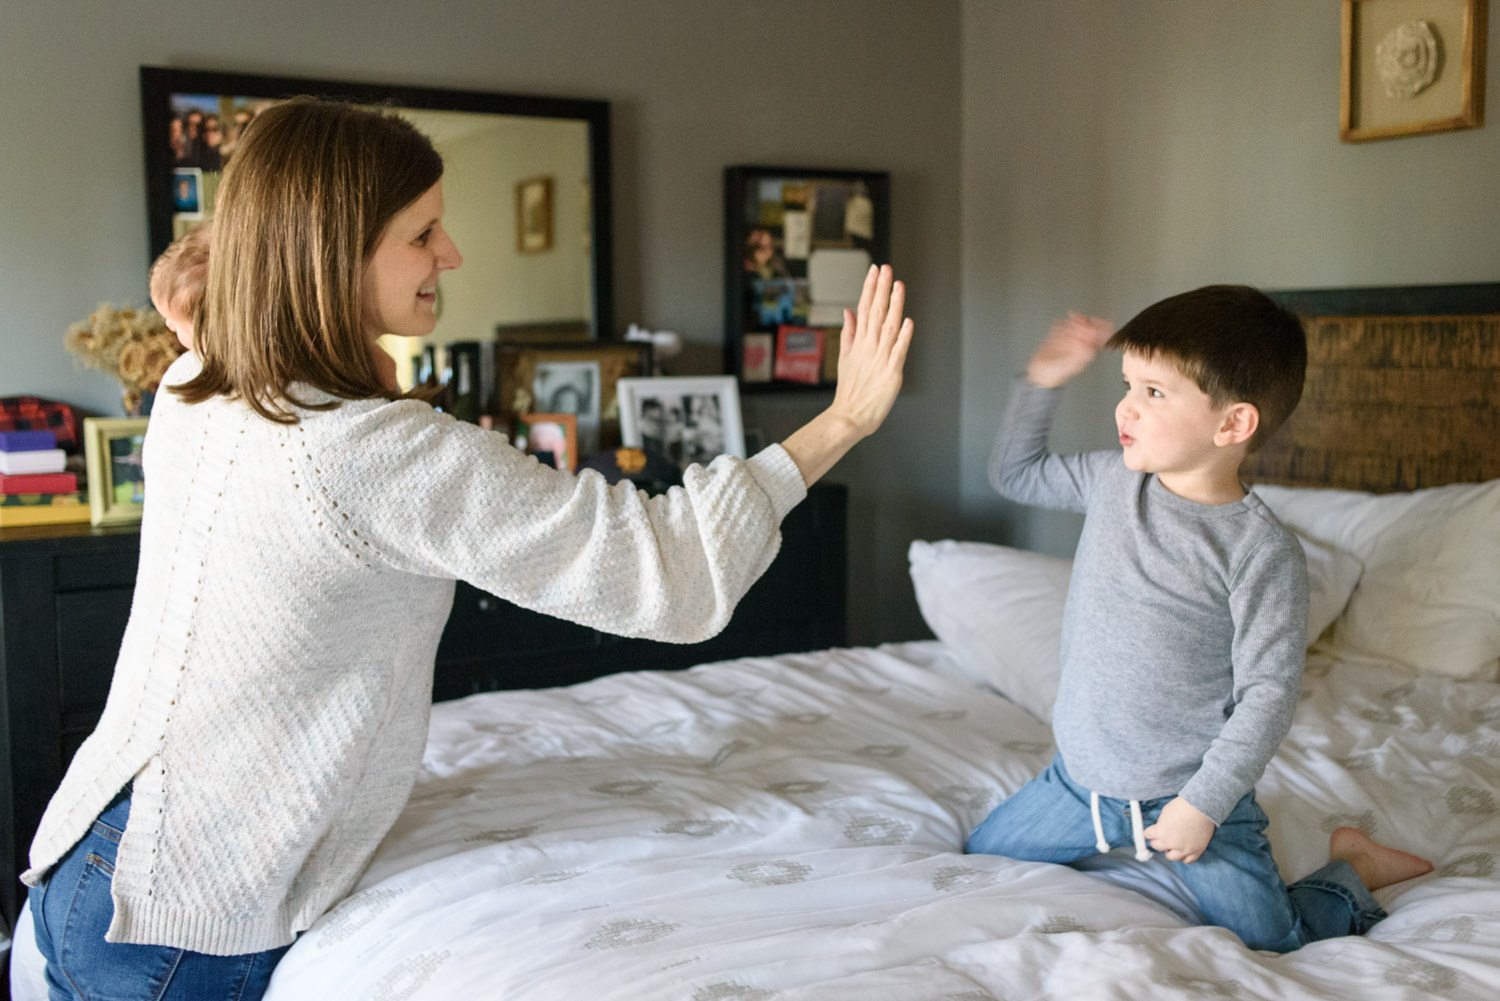 mom gives the big brother a high five